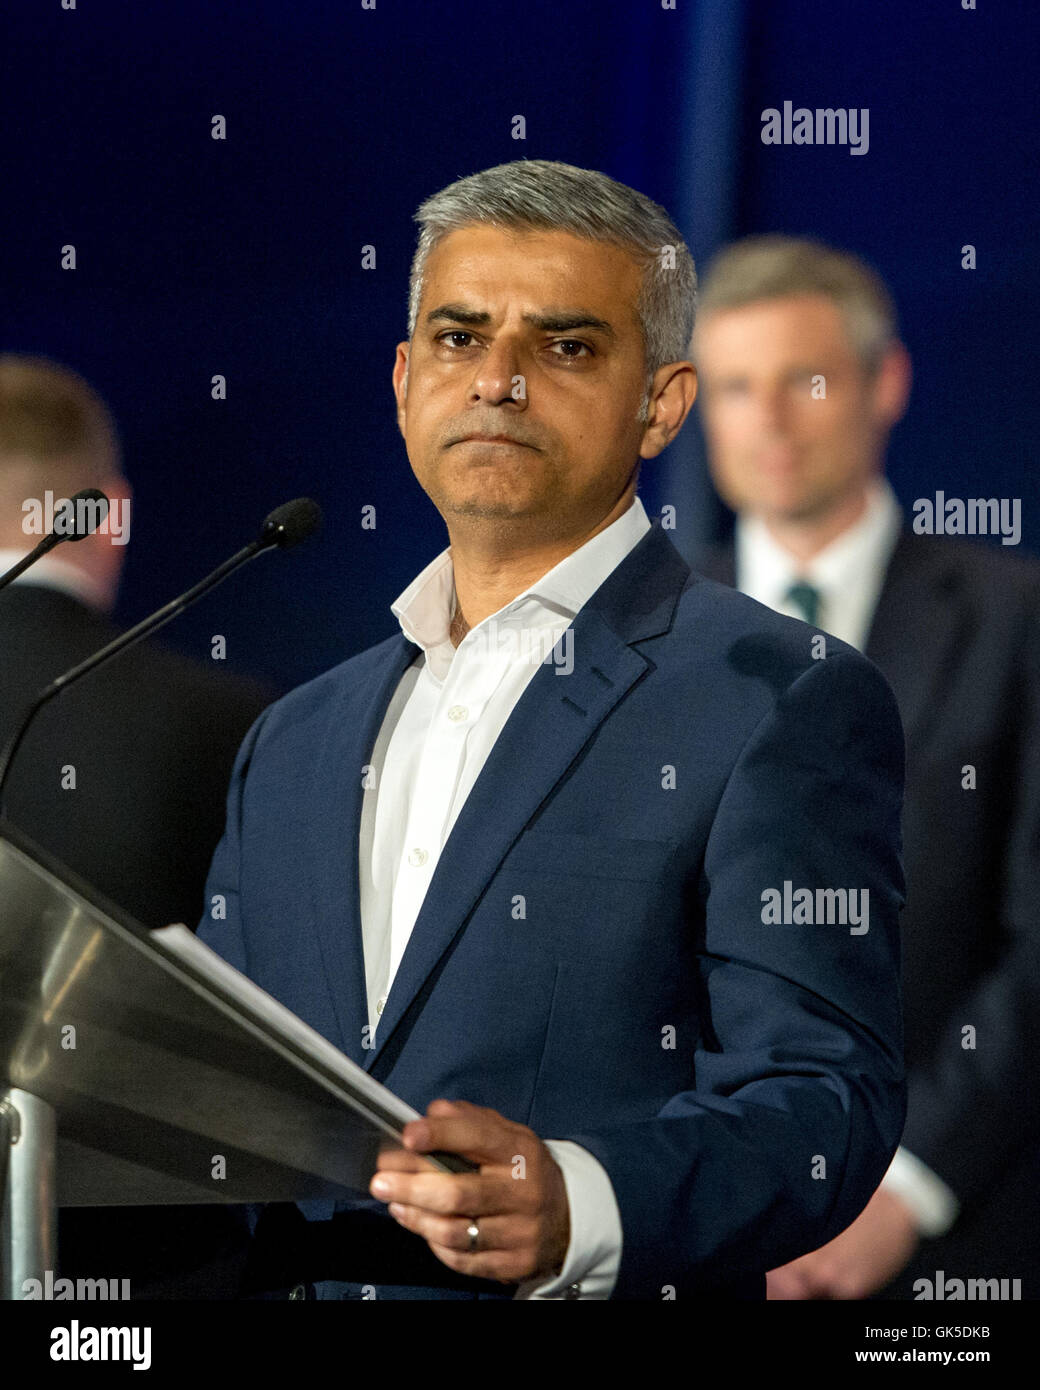 Sadiq Khan takes the stage after being elected as the new Mayor of London  Featuring: Sadiq Khan Where: London, - Stock Image